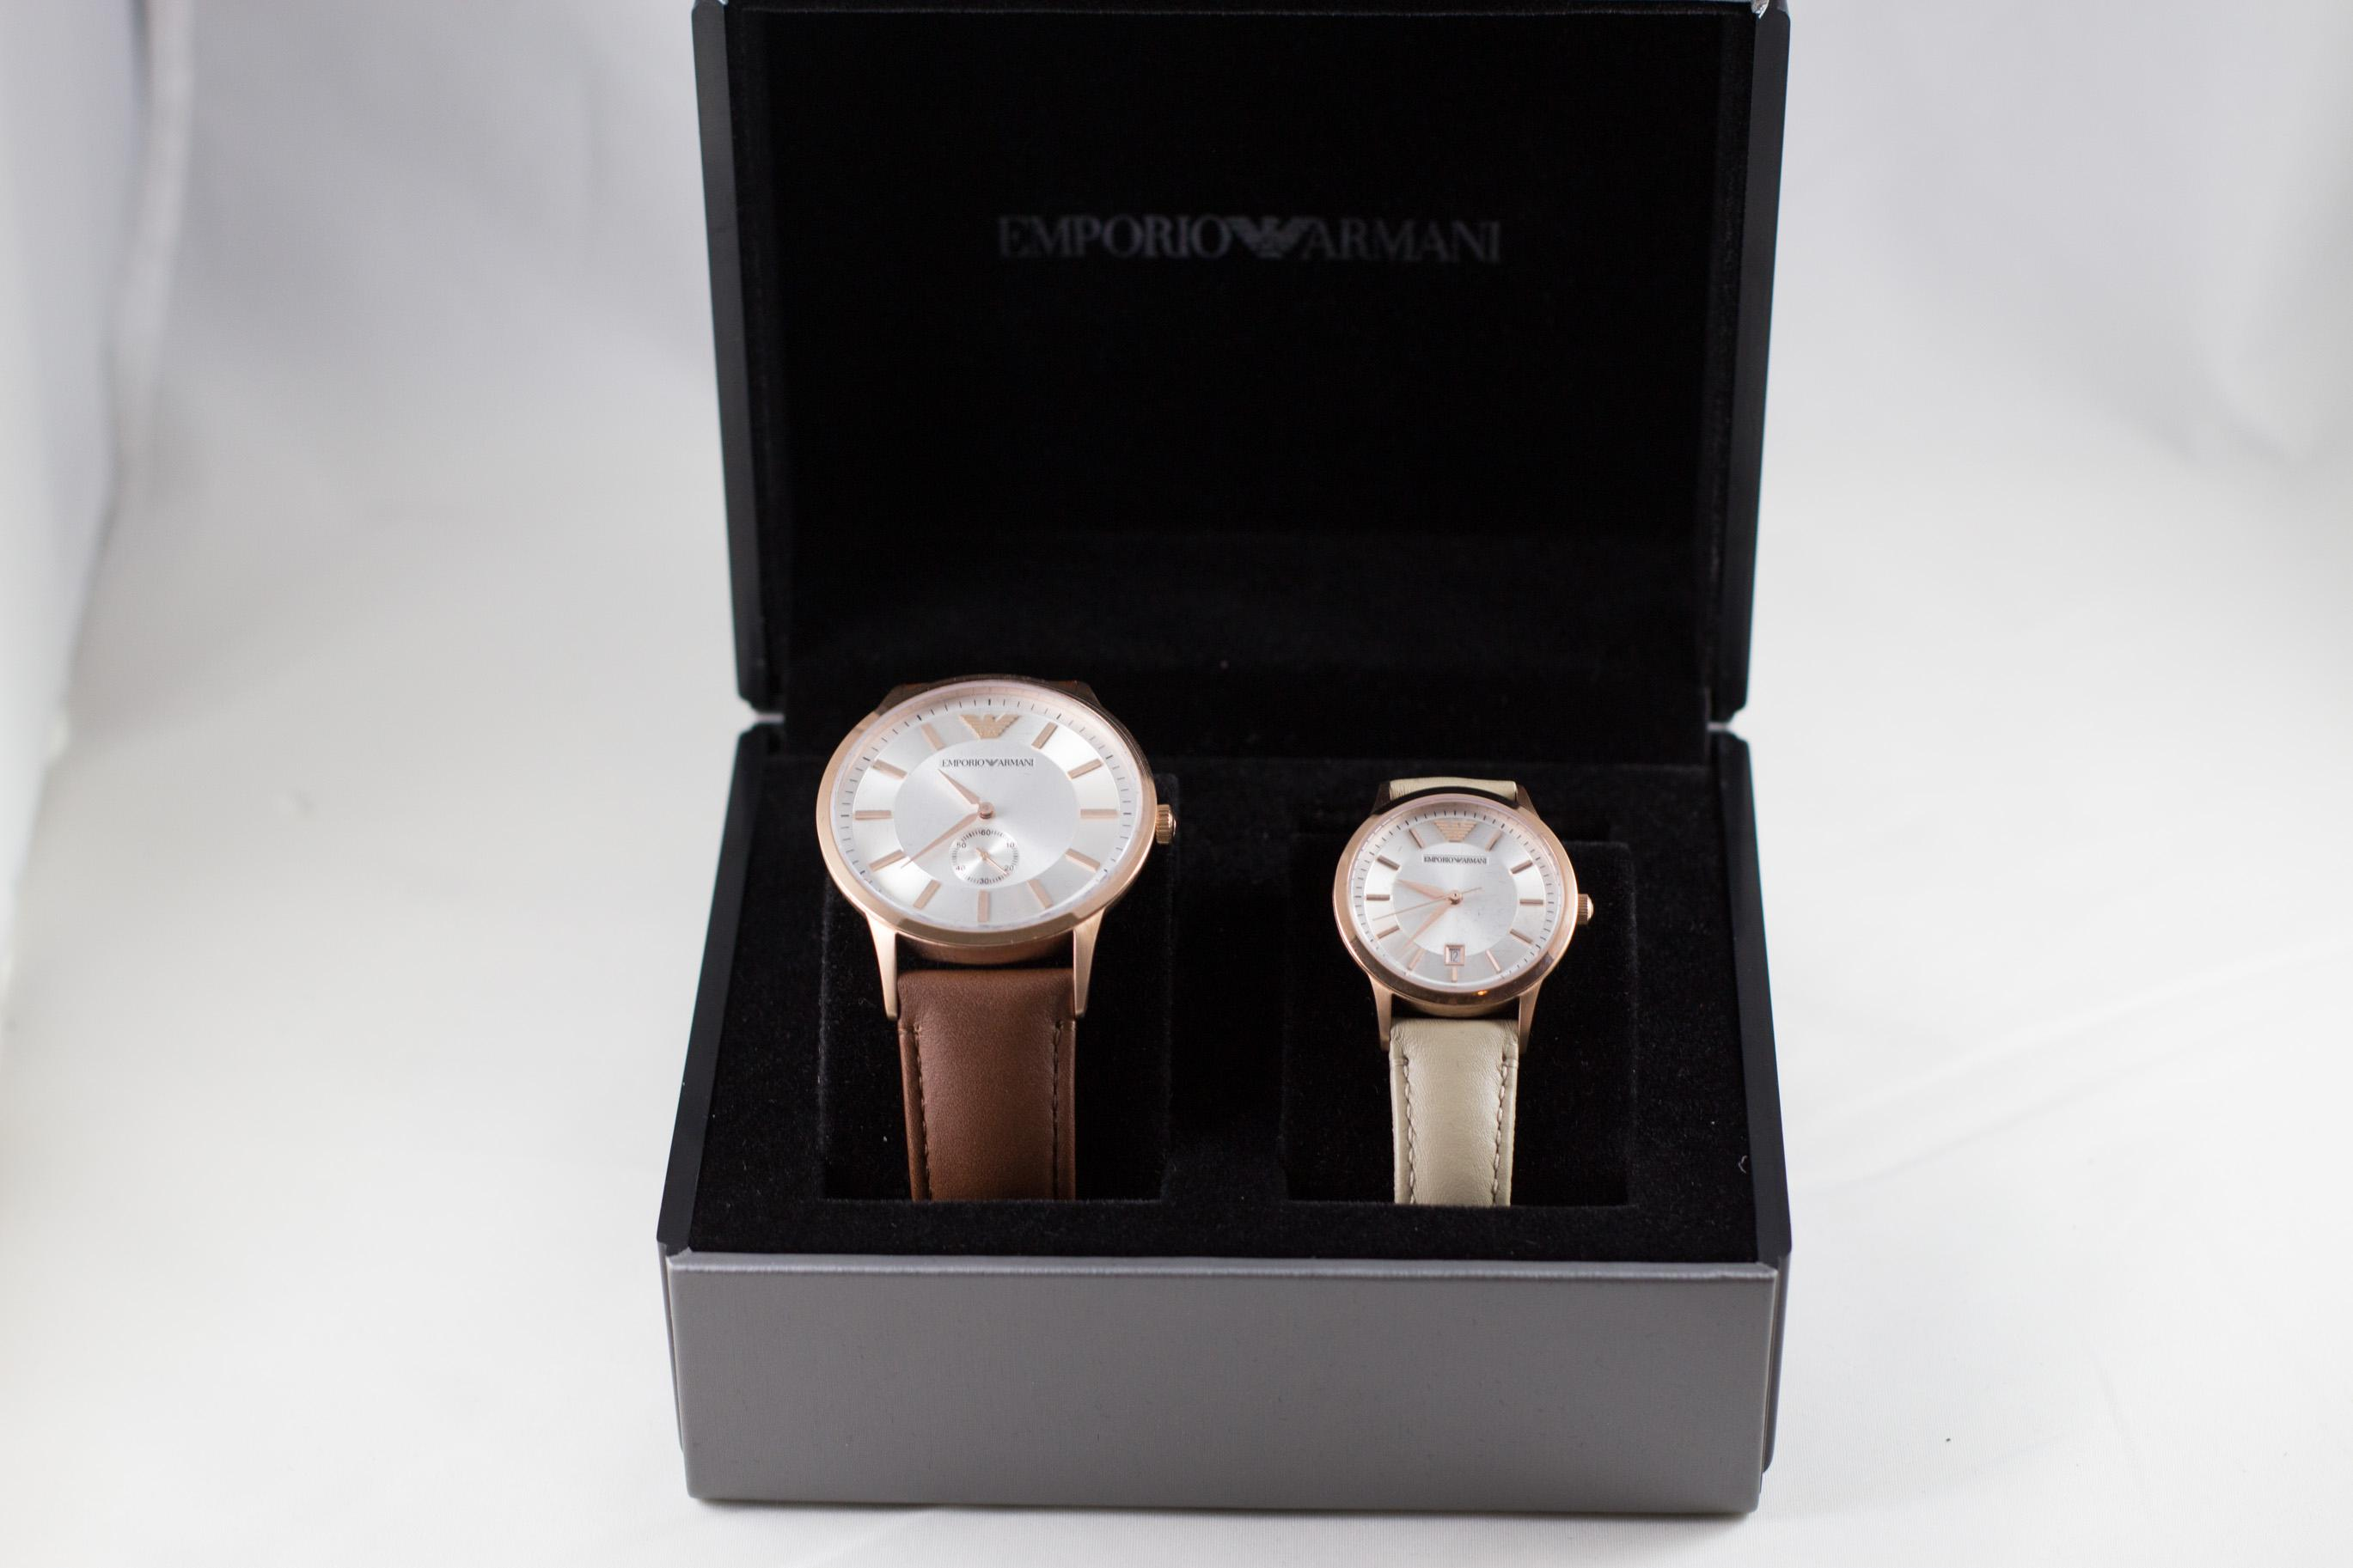 Mens and Ladies Emporio Armani Watch Gift Set BNIB on Tradesy